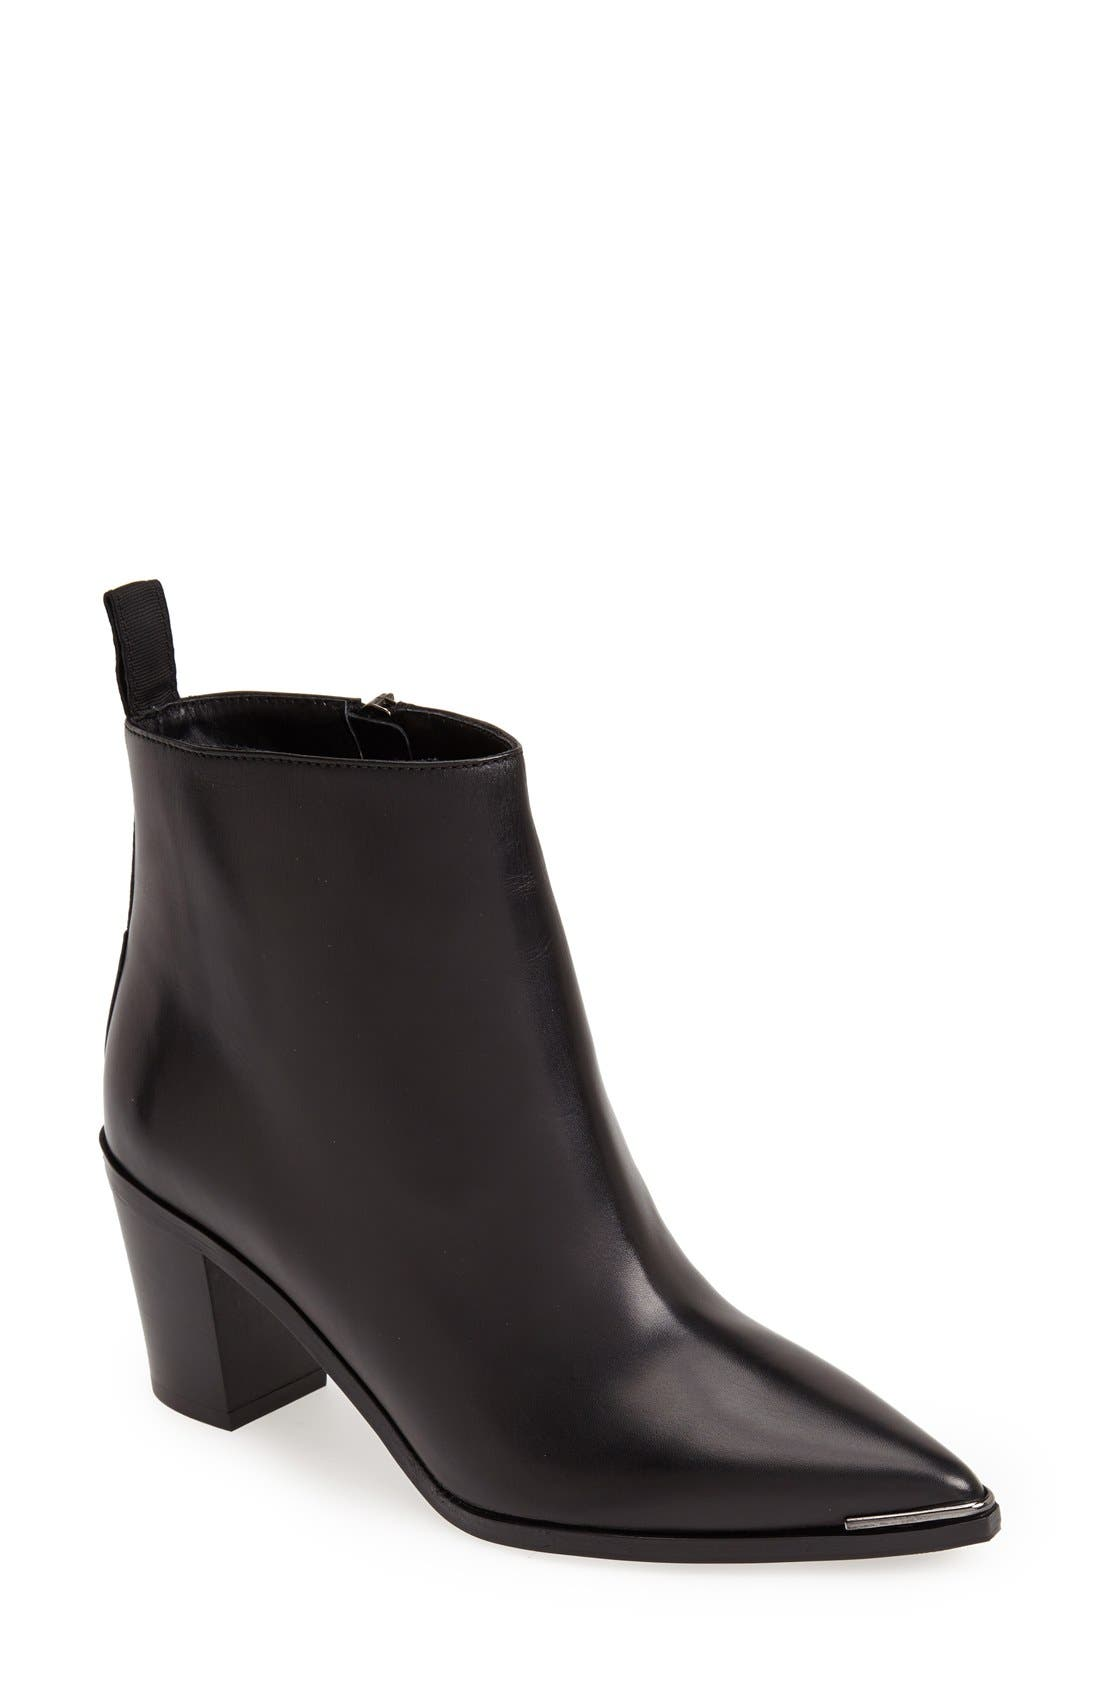 Alternate Image 1 Selected - Acne Studios 'Loma' Pointy Toe Bootie (Women)